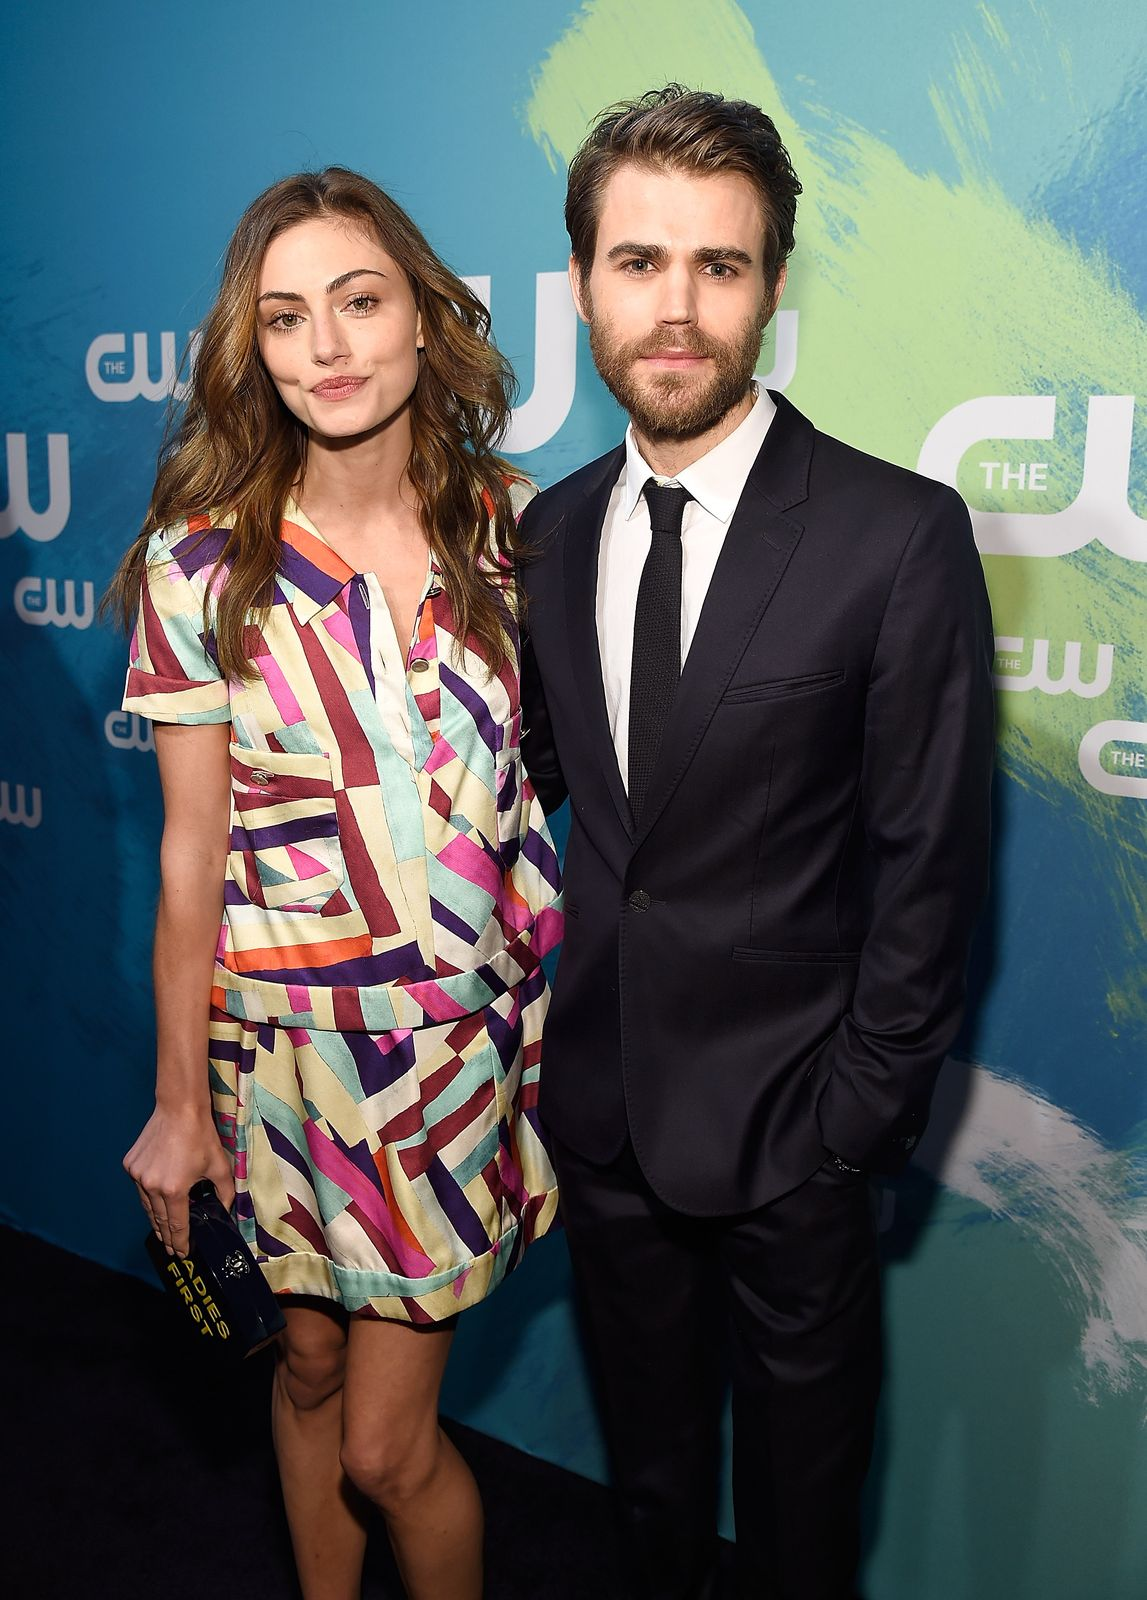 Paul Wesley and Phoebe Tonkin attending a red carpet event/Photo:Getty Images